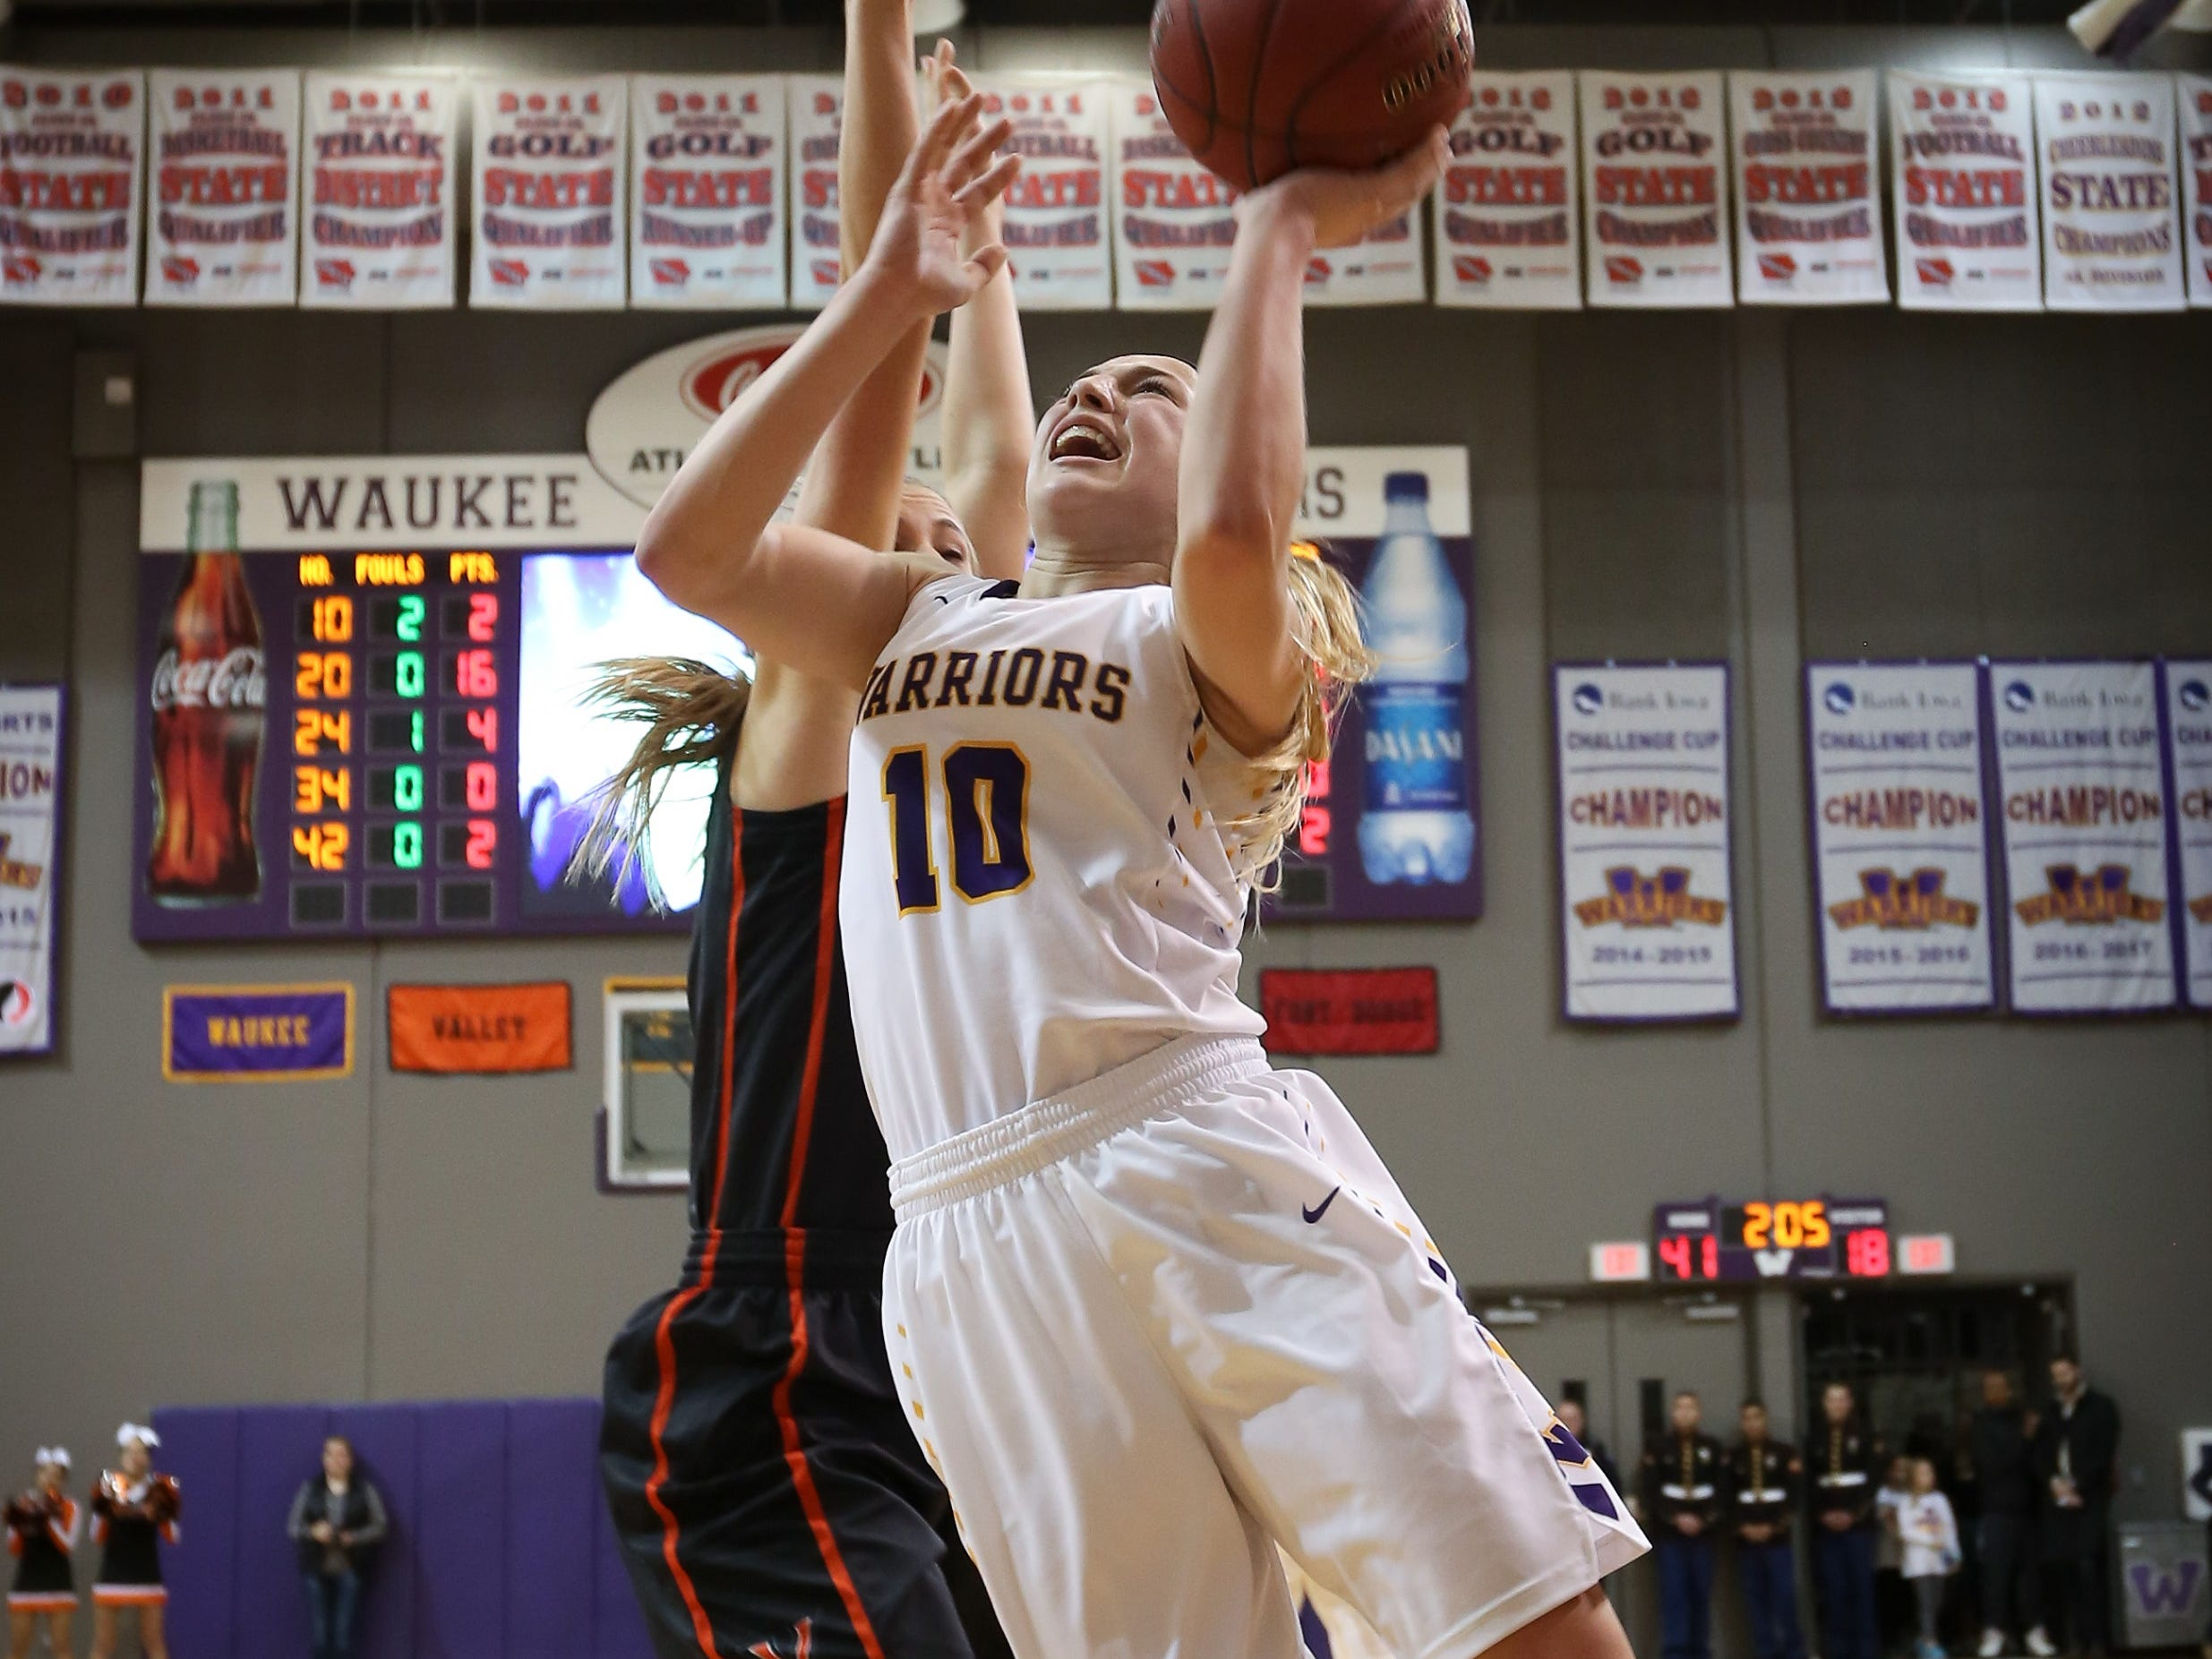 Waukee sophomore Katie Dinnebier goes for a layup during a girls high school basketball game between the Valley Tigers and the Waukee Warriors at Waukee High School on Dec. 14, 2018 in Waukee, Iowa.